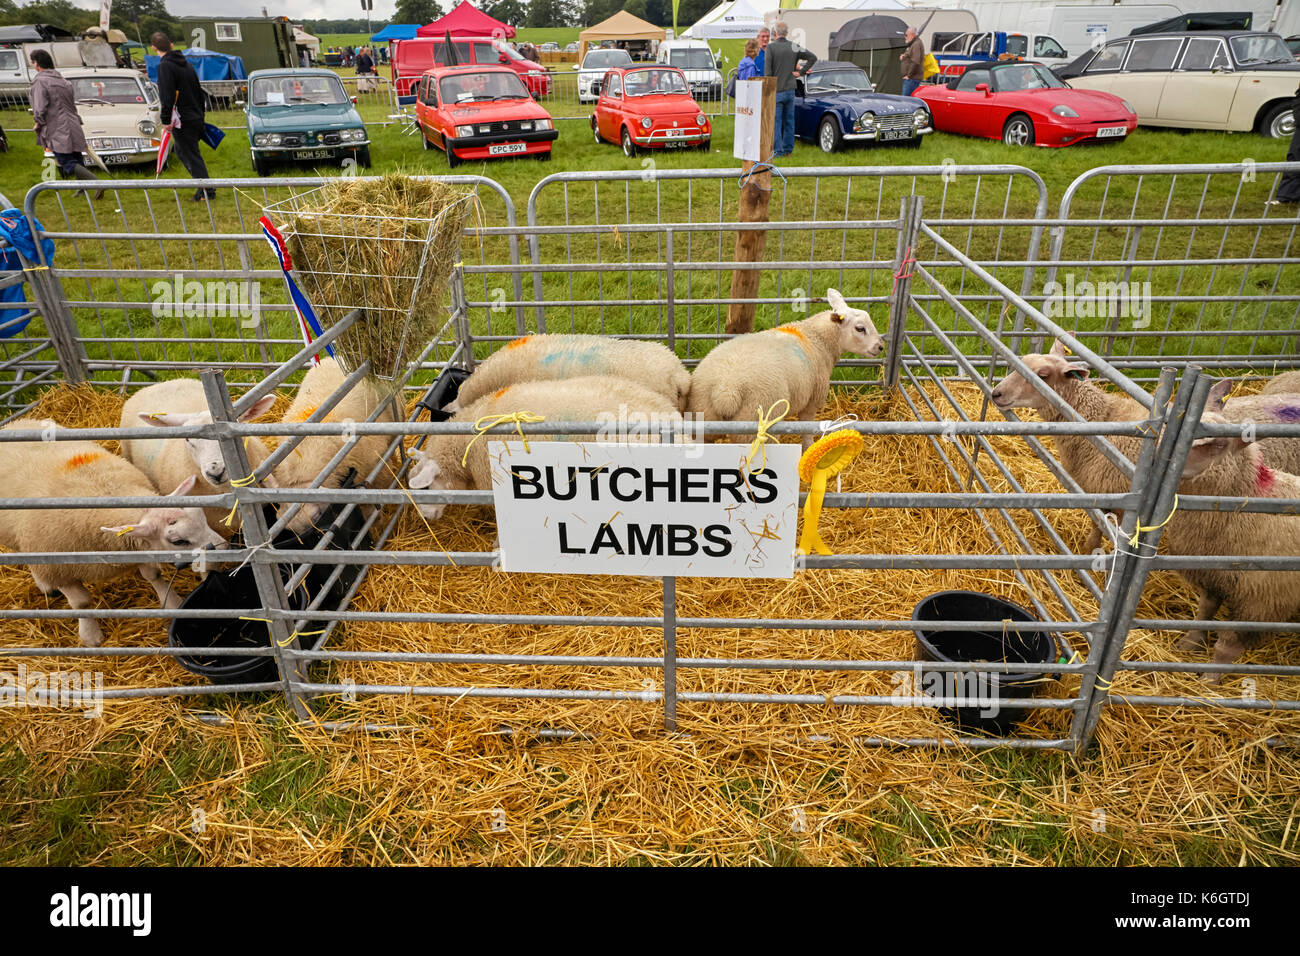 Butchers Lambs at Nantwich show - Stock Image